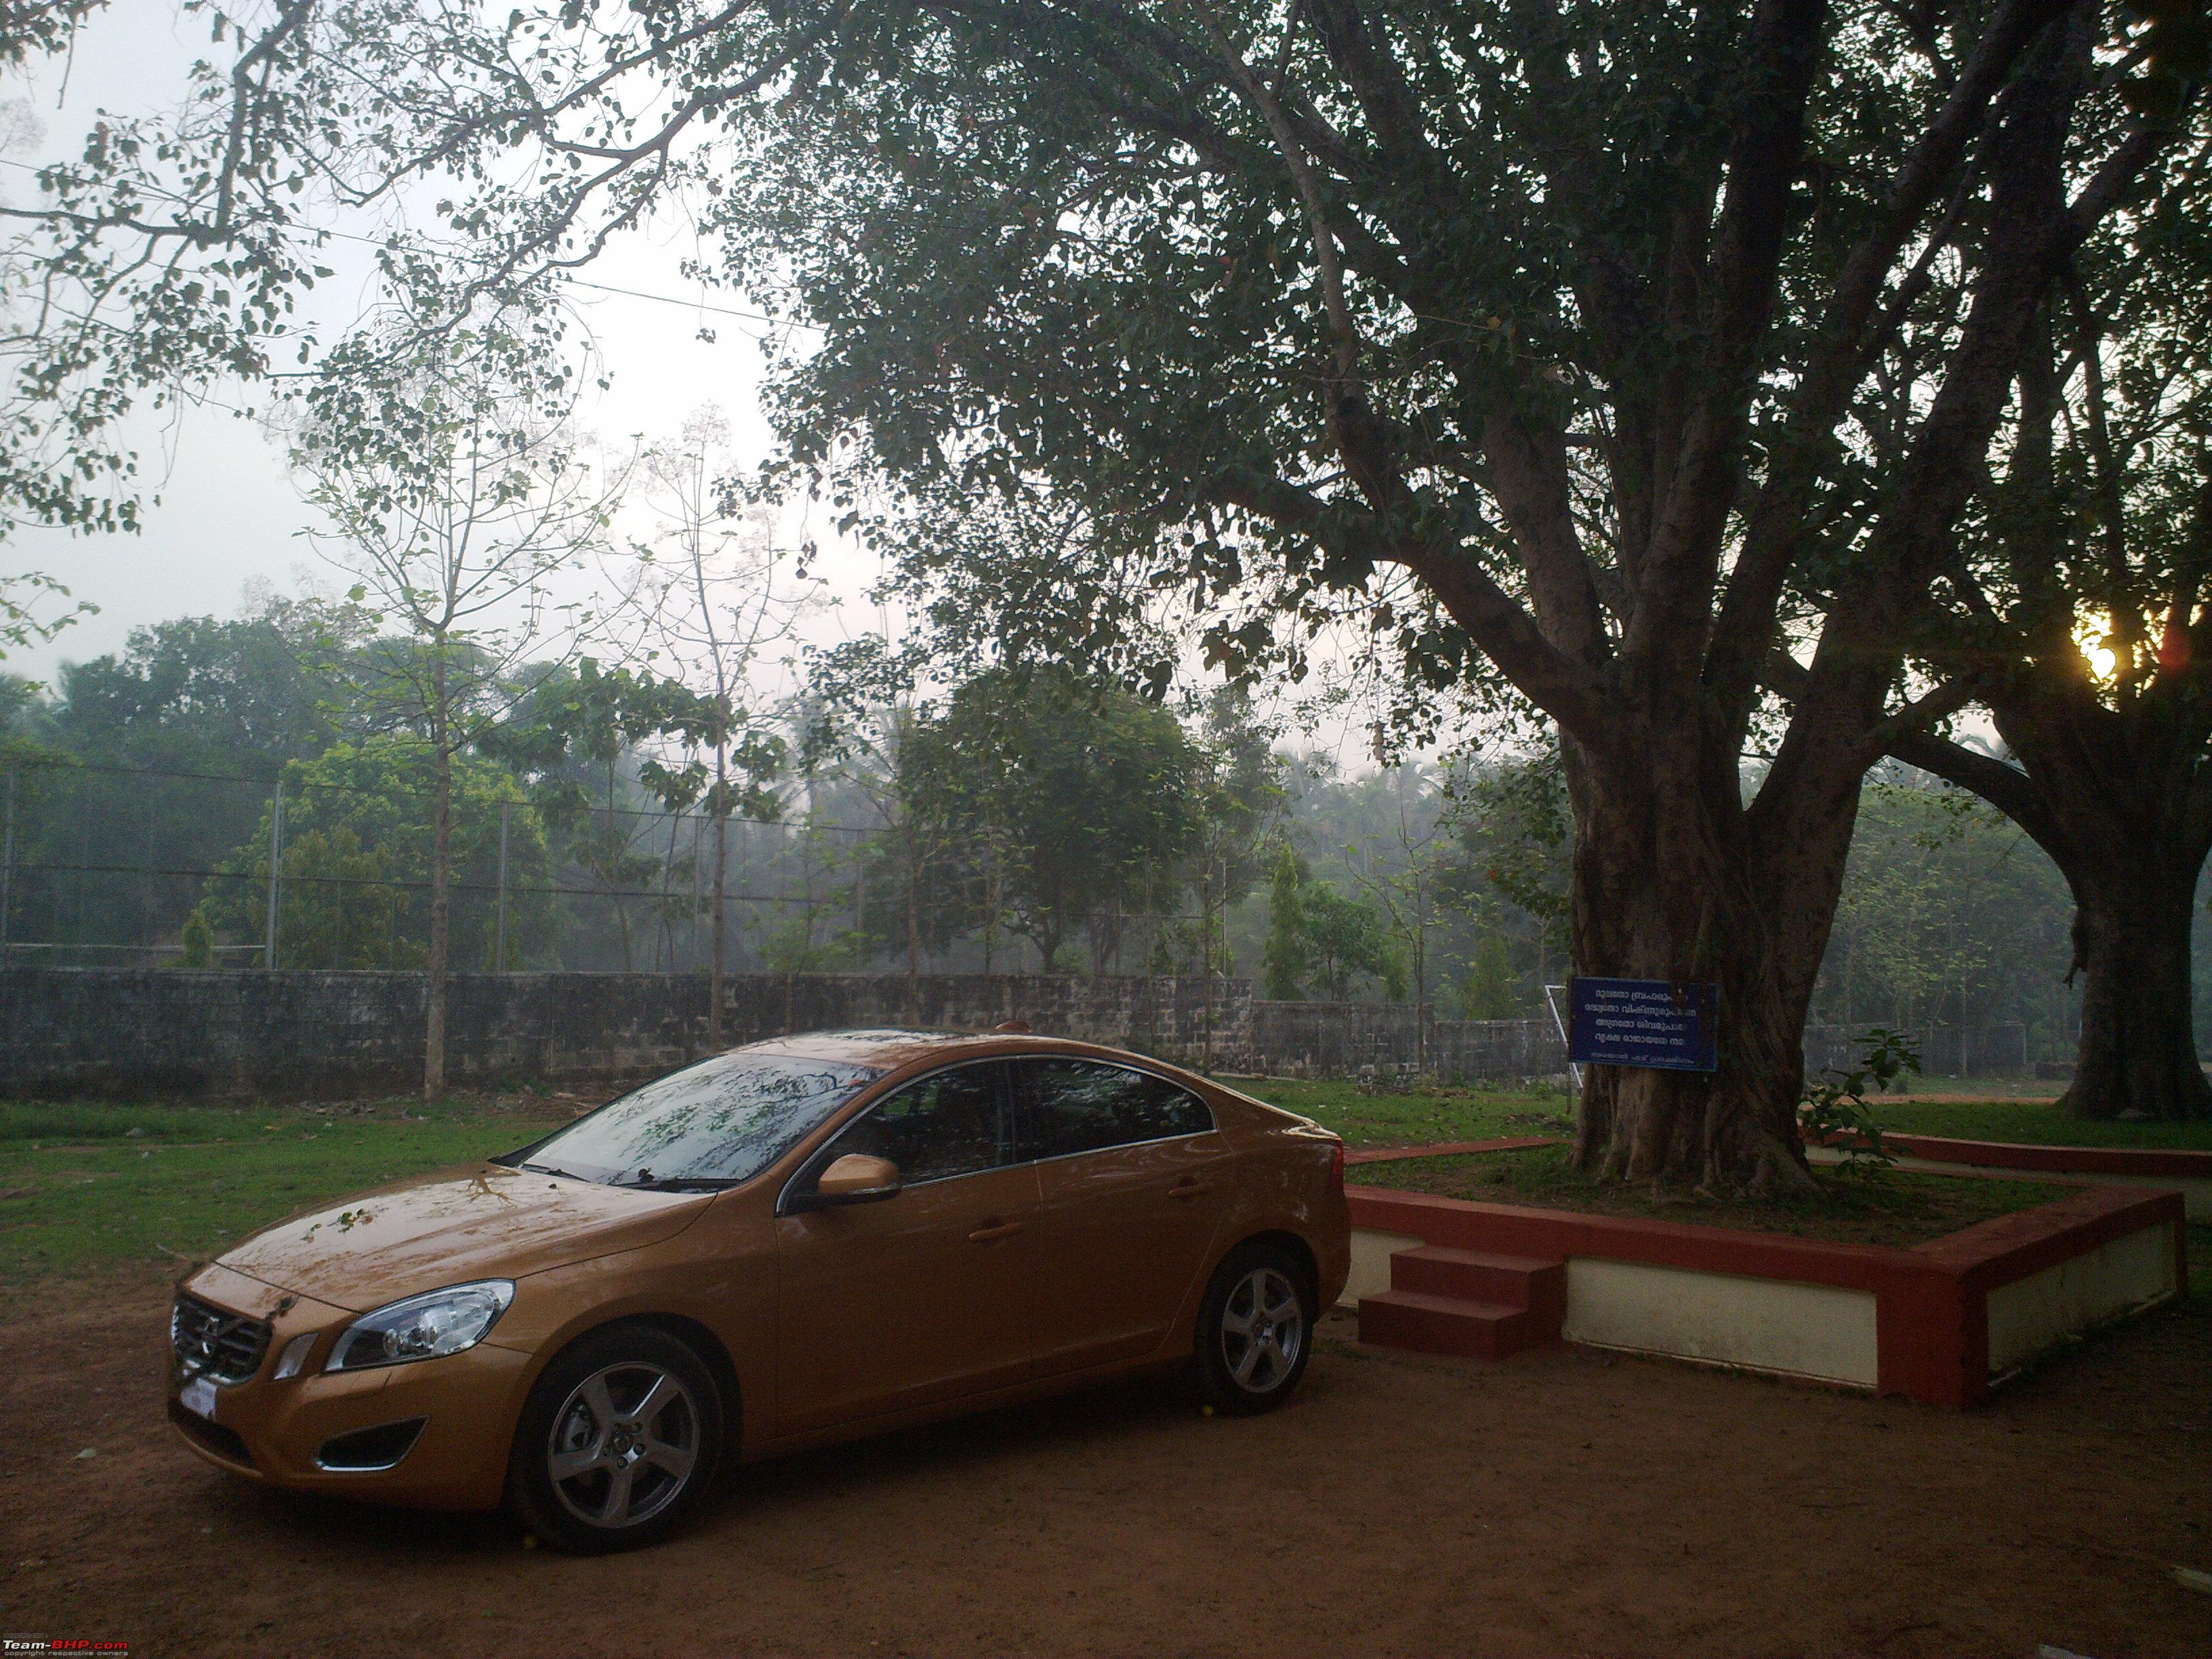 Volvo S60 D5: 7 years, 53000 km Ownership Review-pooja.jpg